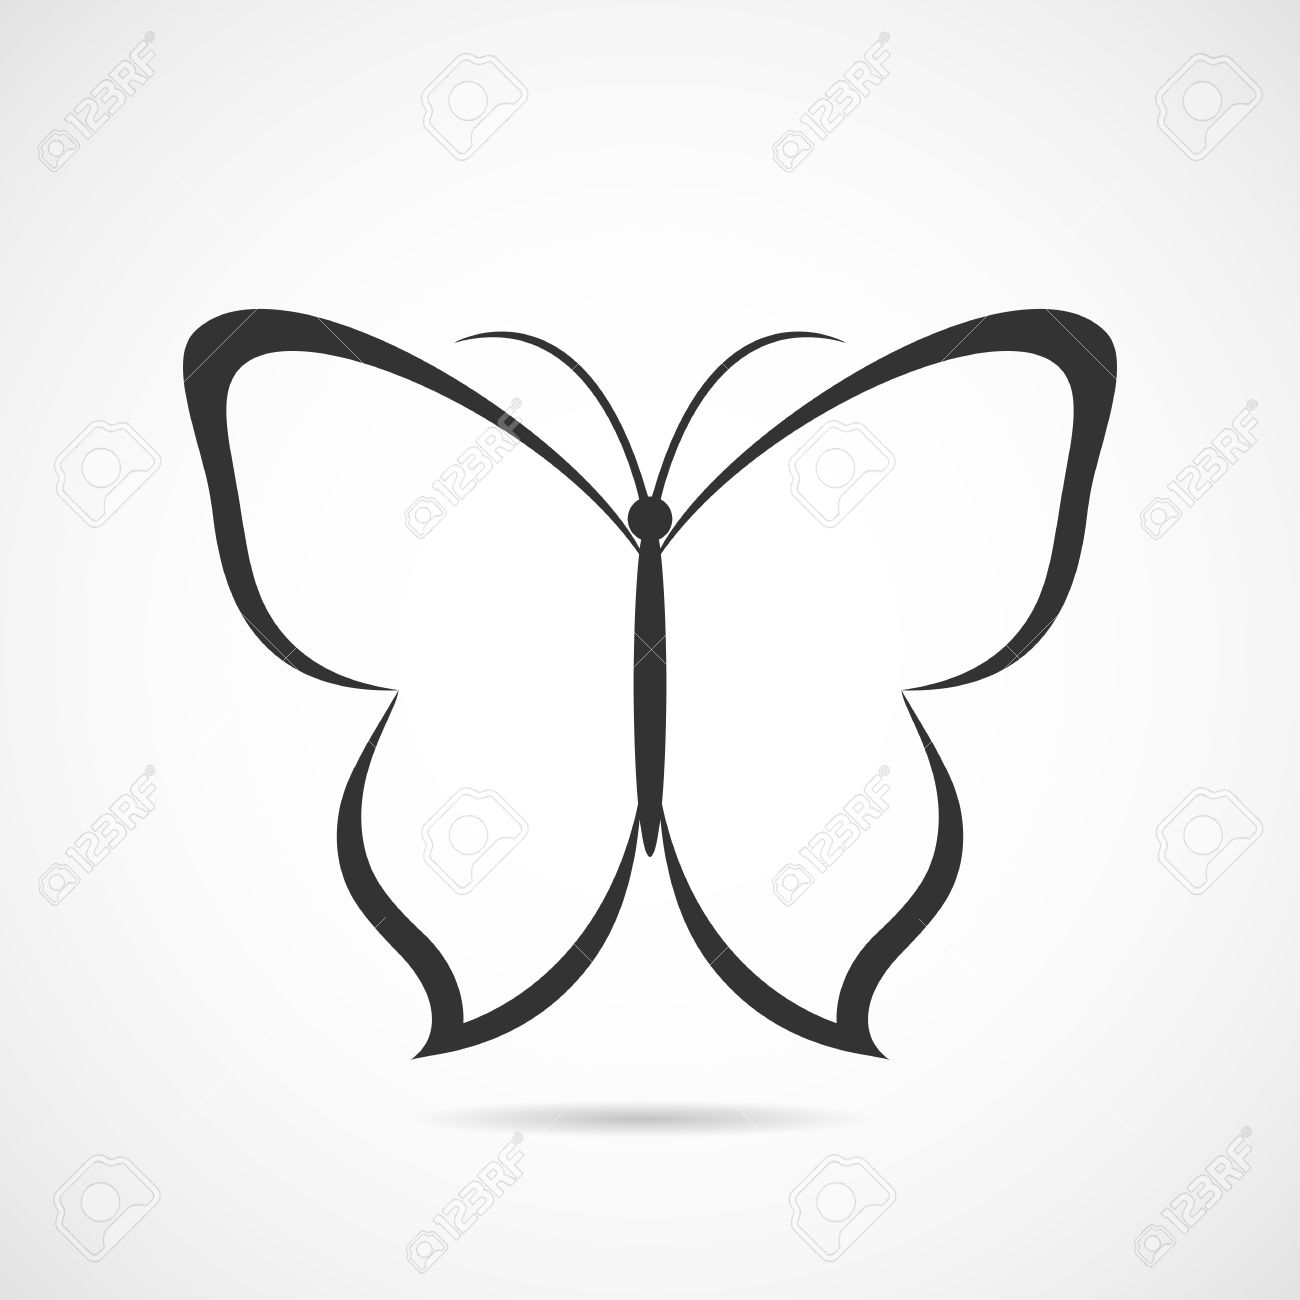 Vector butterfly icon or background royalty free cliparts vectors vector butterfly icon or background stock vector 27375707 biocorpaavc Image collections